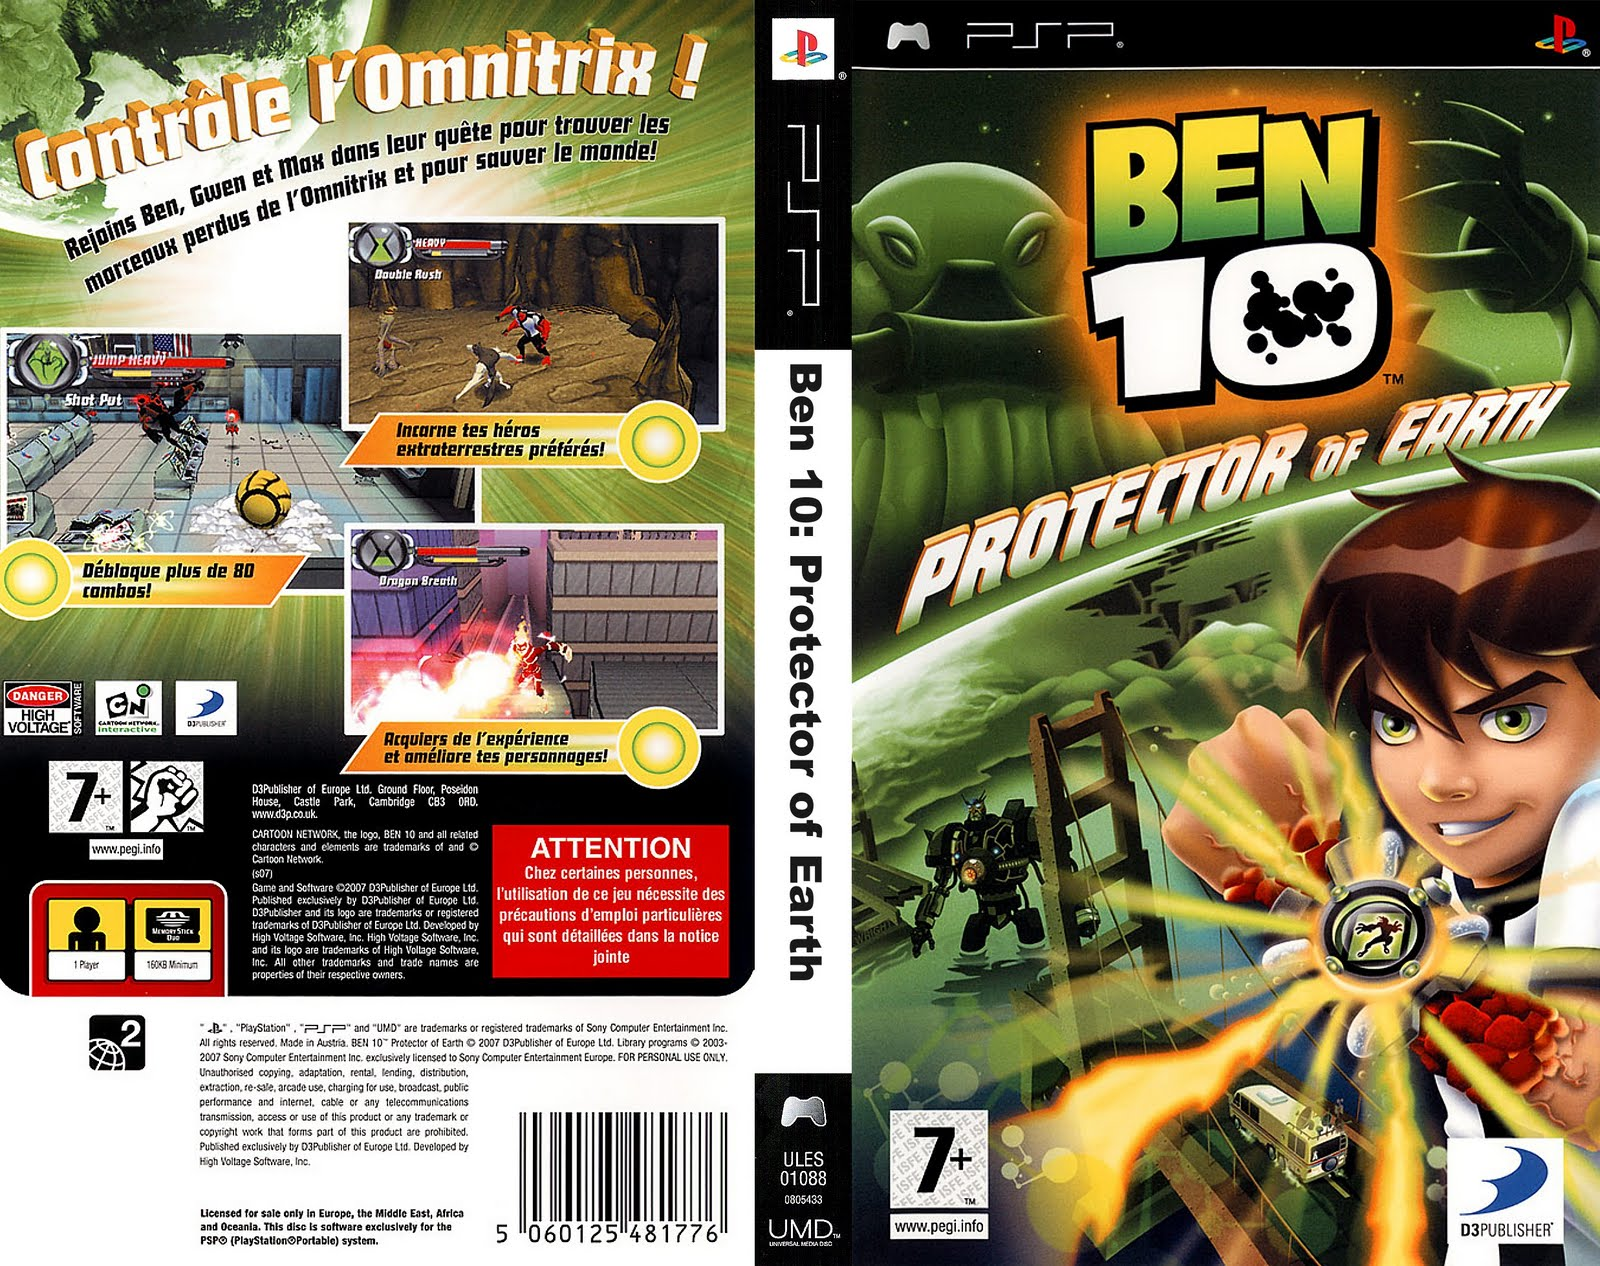 Ben 10 Protector Of Earth Ps2 – Wonderful Image Gallery